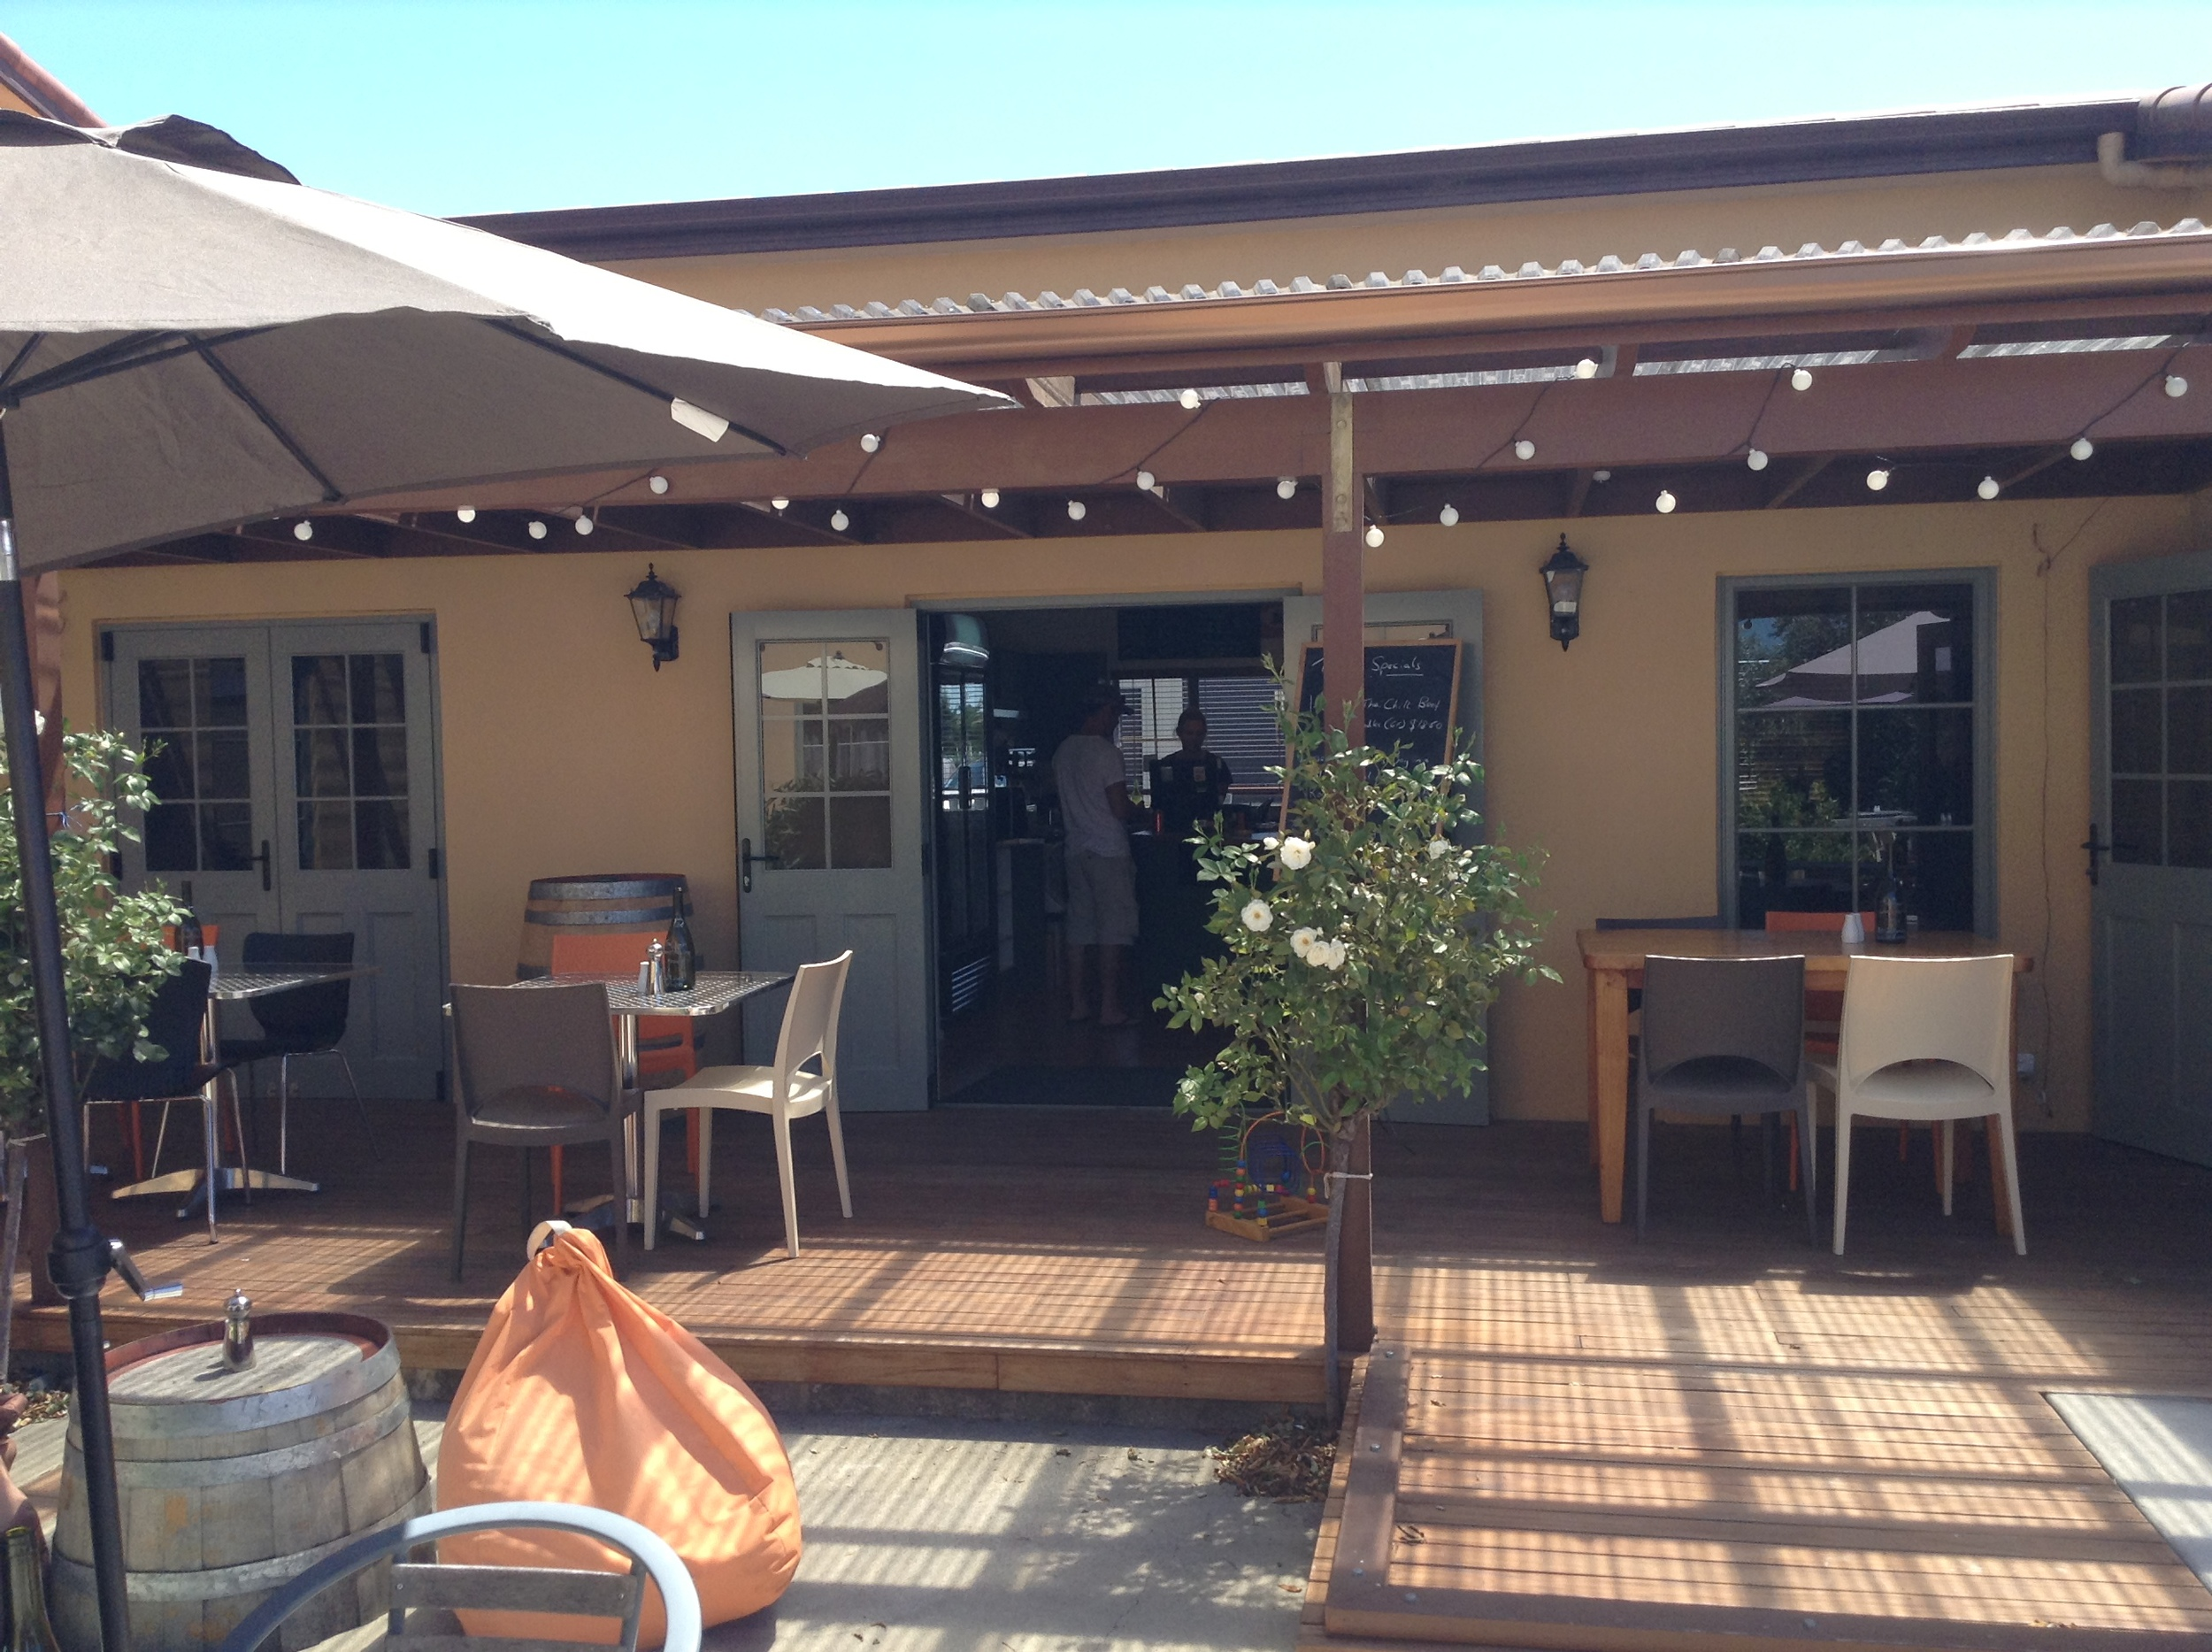 Unison's Unwined cafe and cellar door has a charming villa setting.